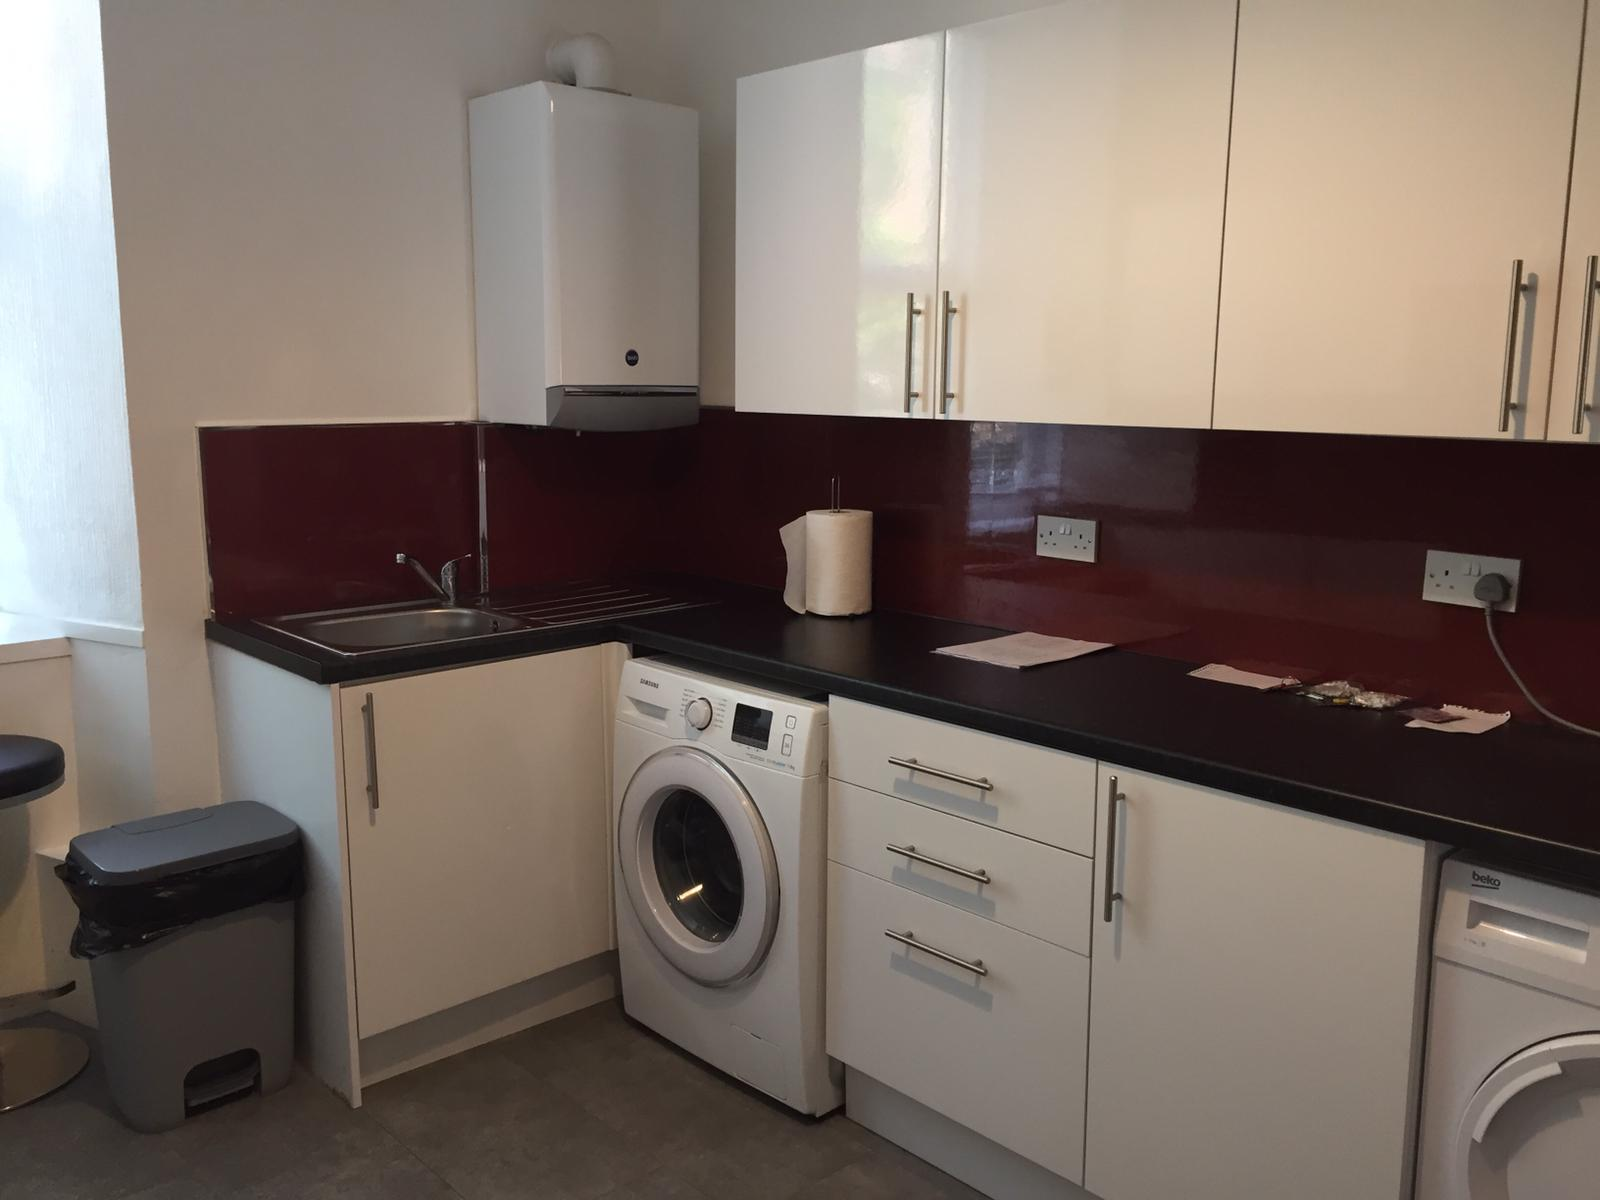 1 room in Glasgow, G3 8TJ RoomsLocal image